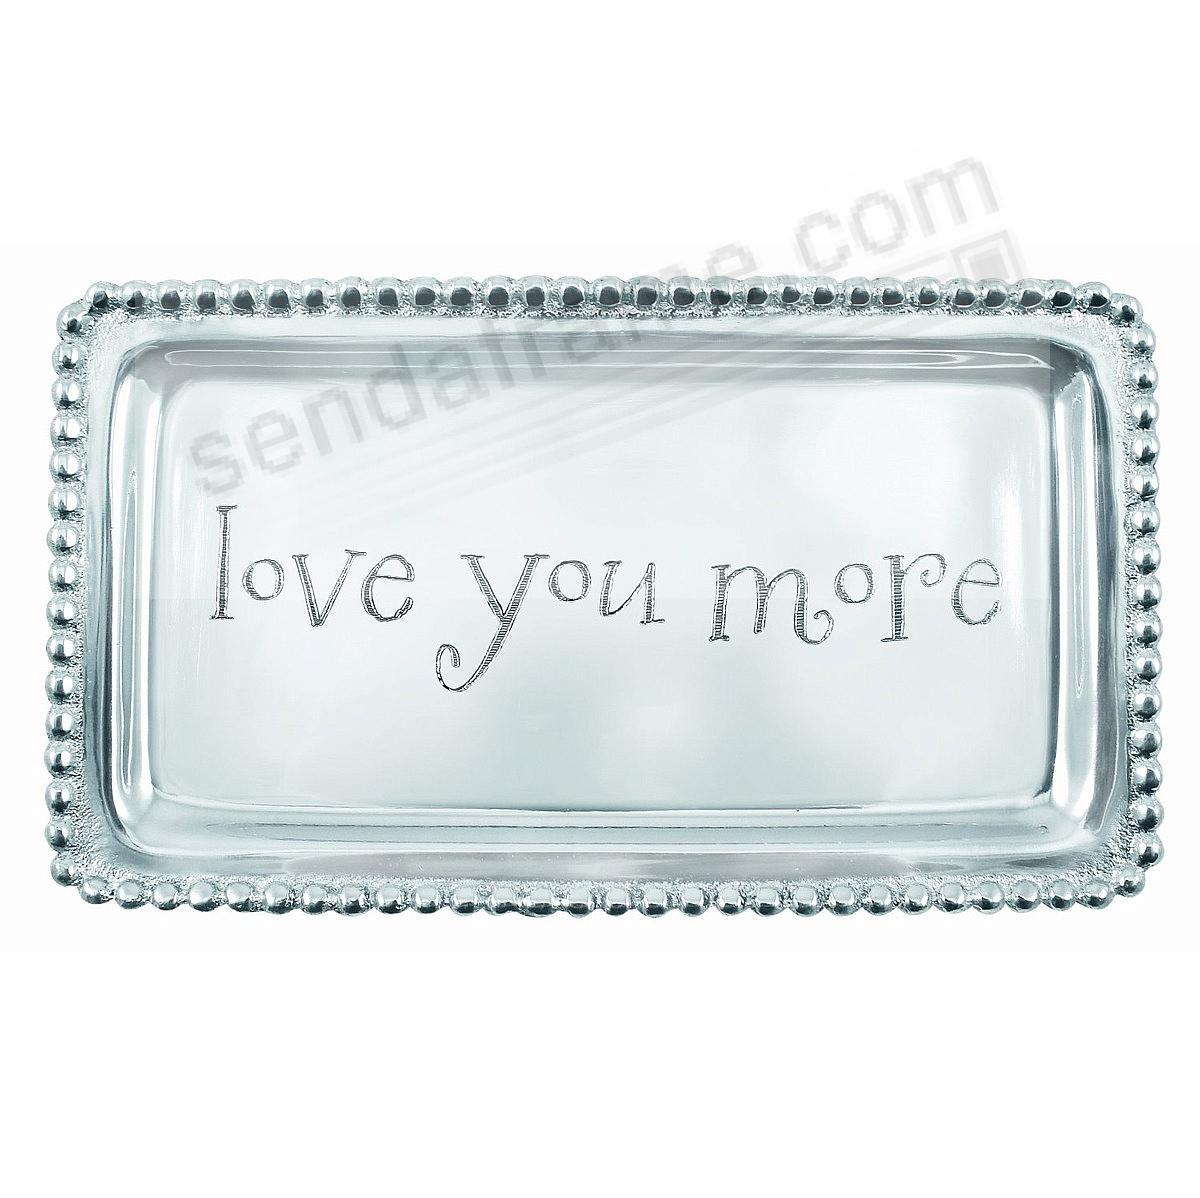 LOVE YOU MORE Statement Tray crafted by Mariposa®